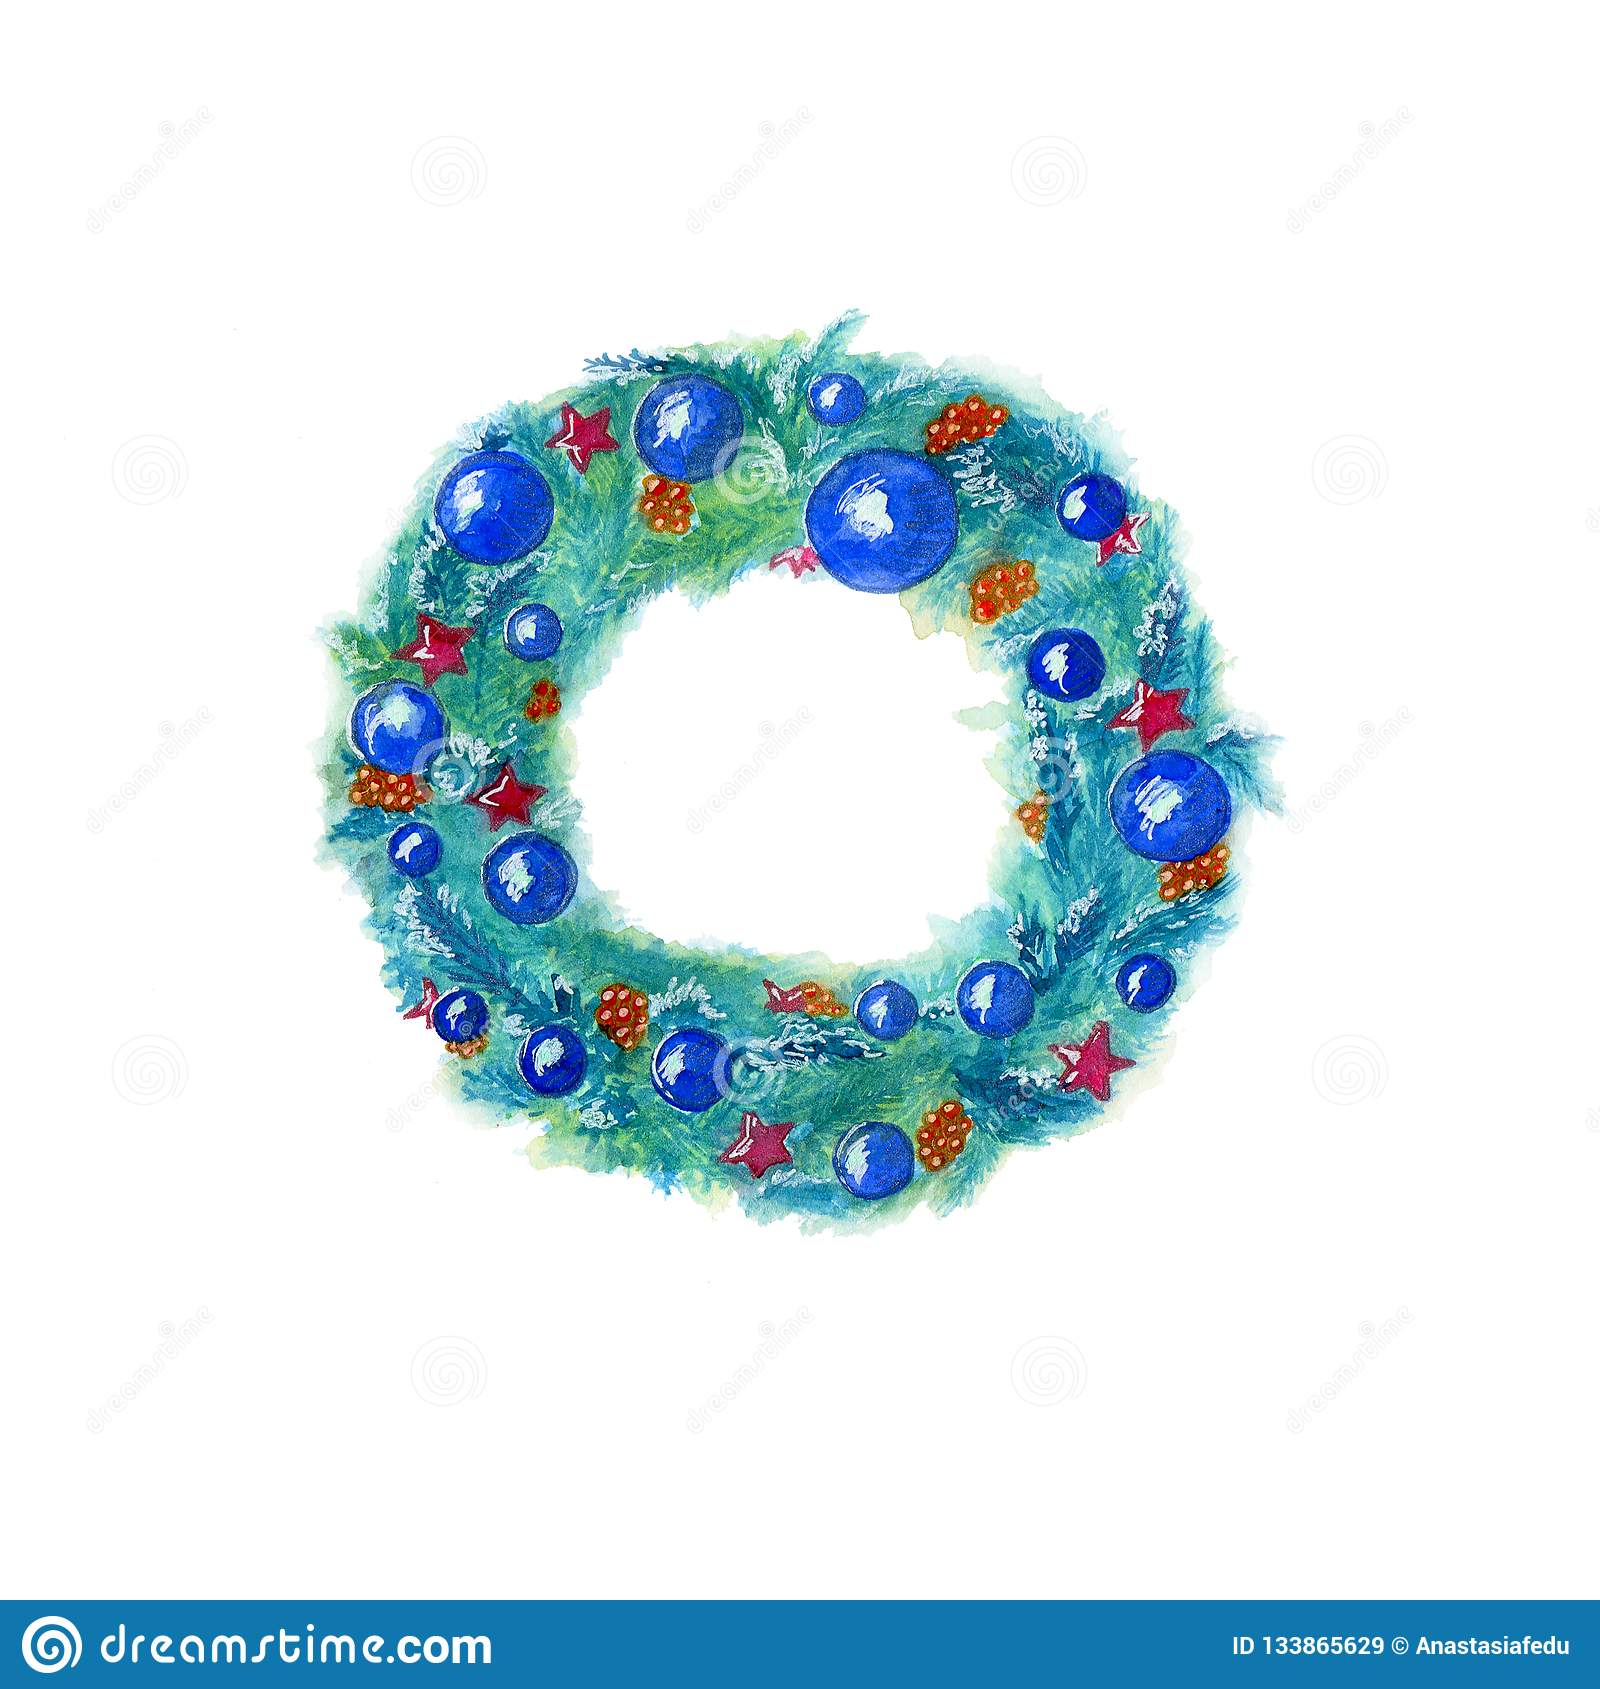 Watercolor hand drawn christmas wreath in blue color with decor isolated on white background.